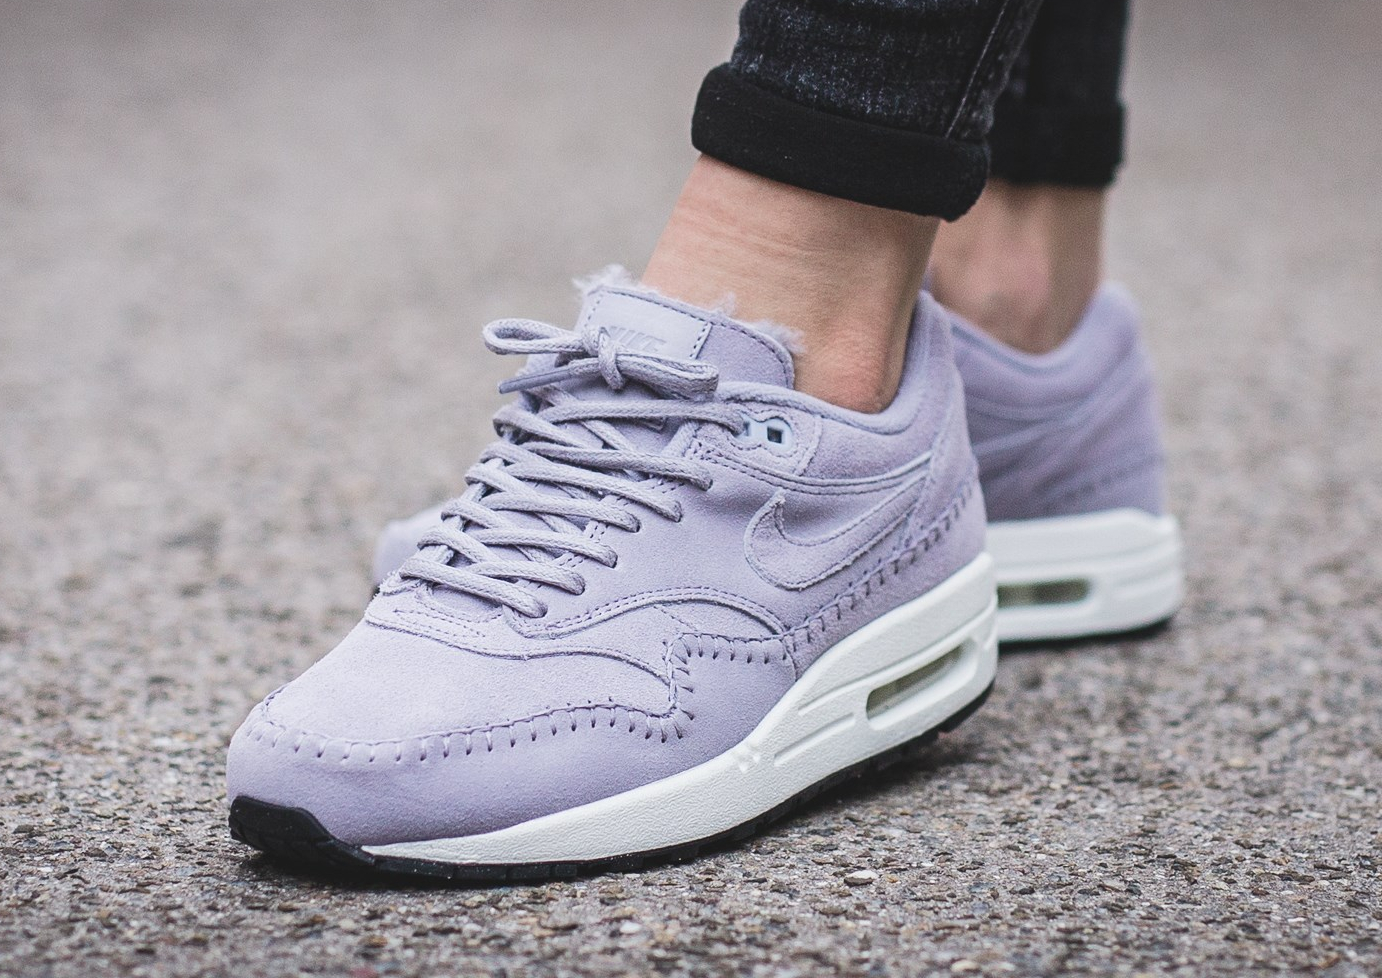 nike-wmns-air-max-1-prm-sherpa-provence-purple